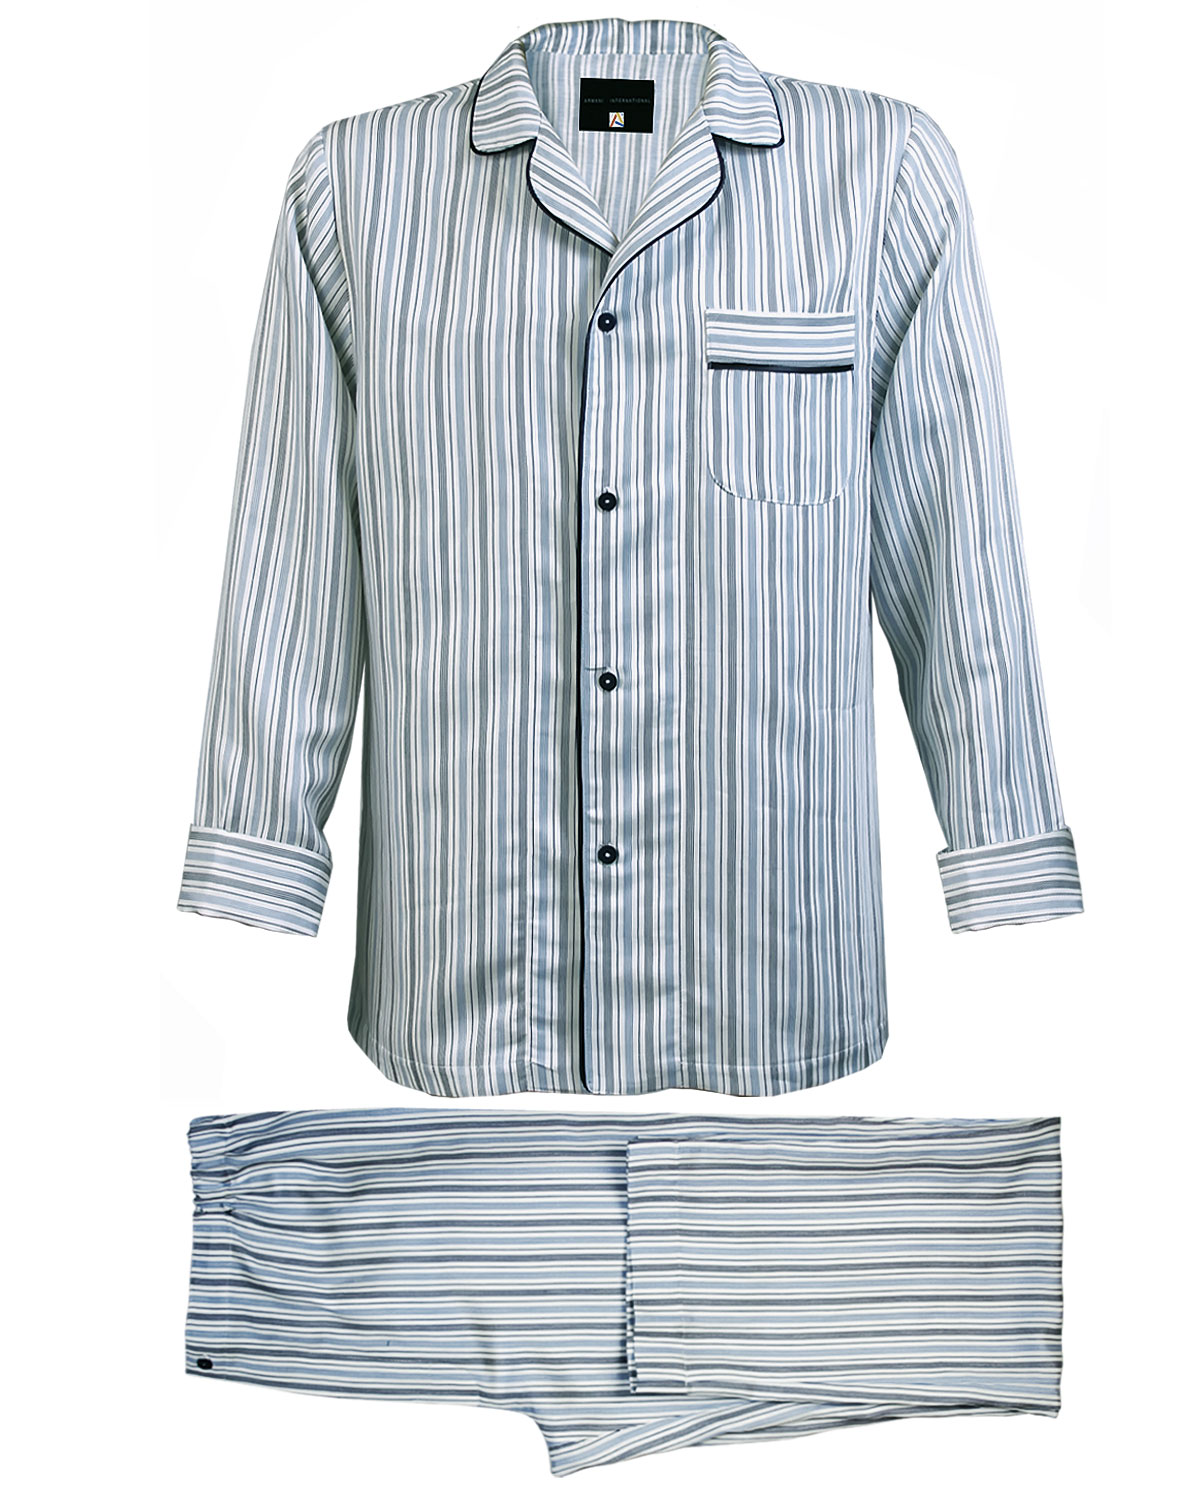 Pajamas Pinstriped Sateen Linen Cotton, Vincenzi Collection